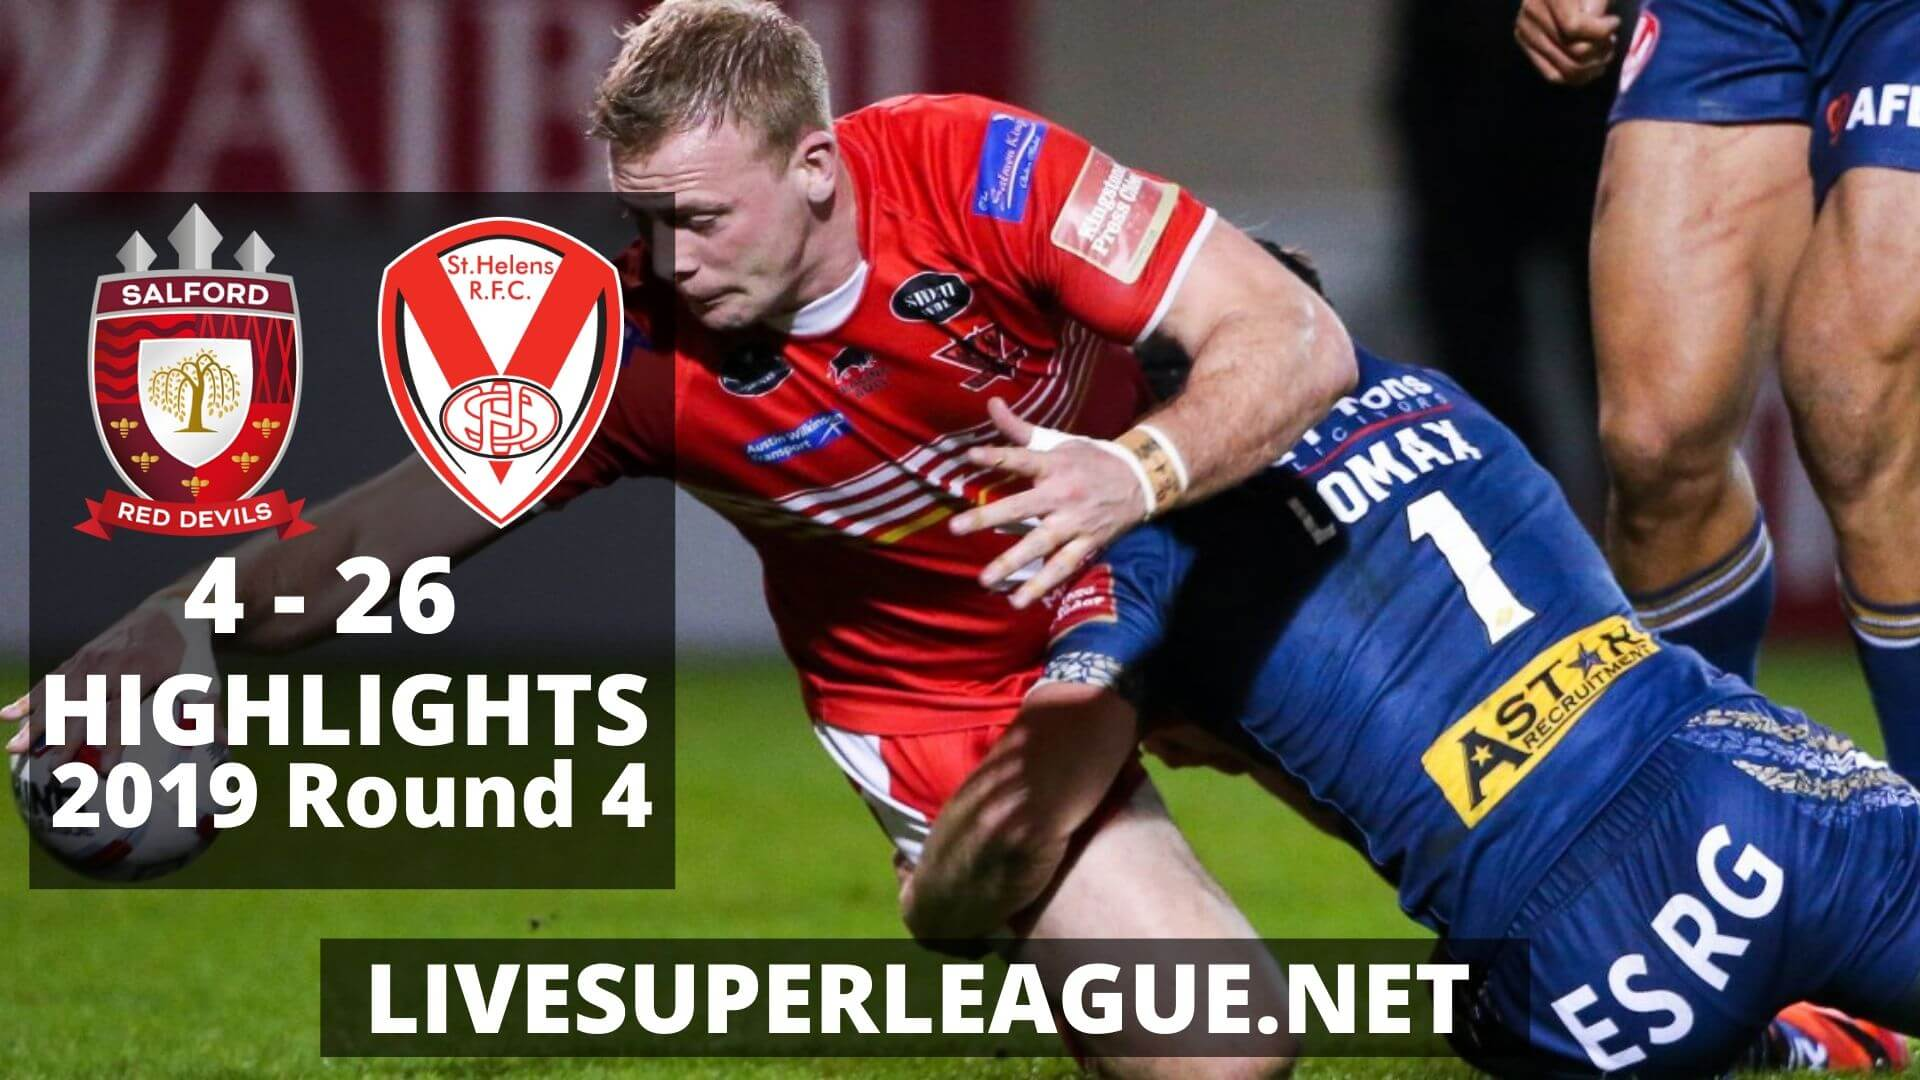 Salford Red Devils Vs St Helens Highlights 2019 Round 4